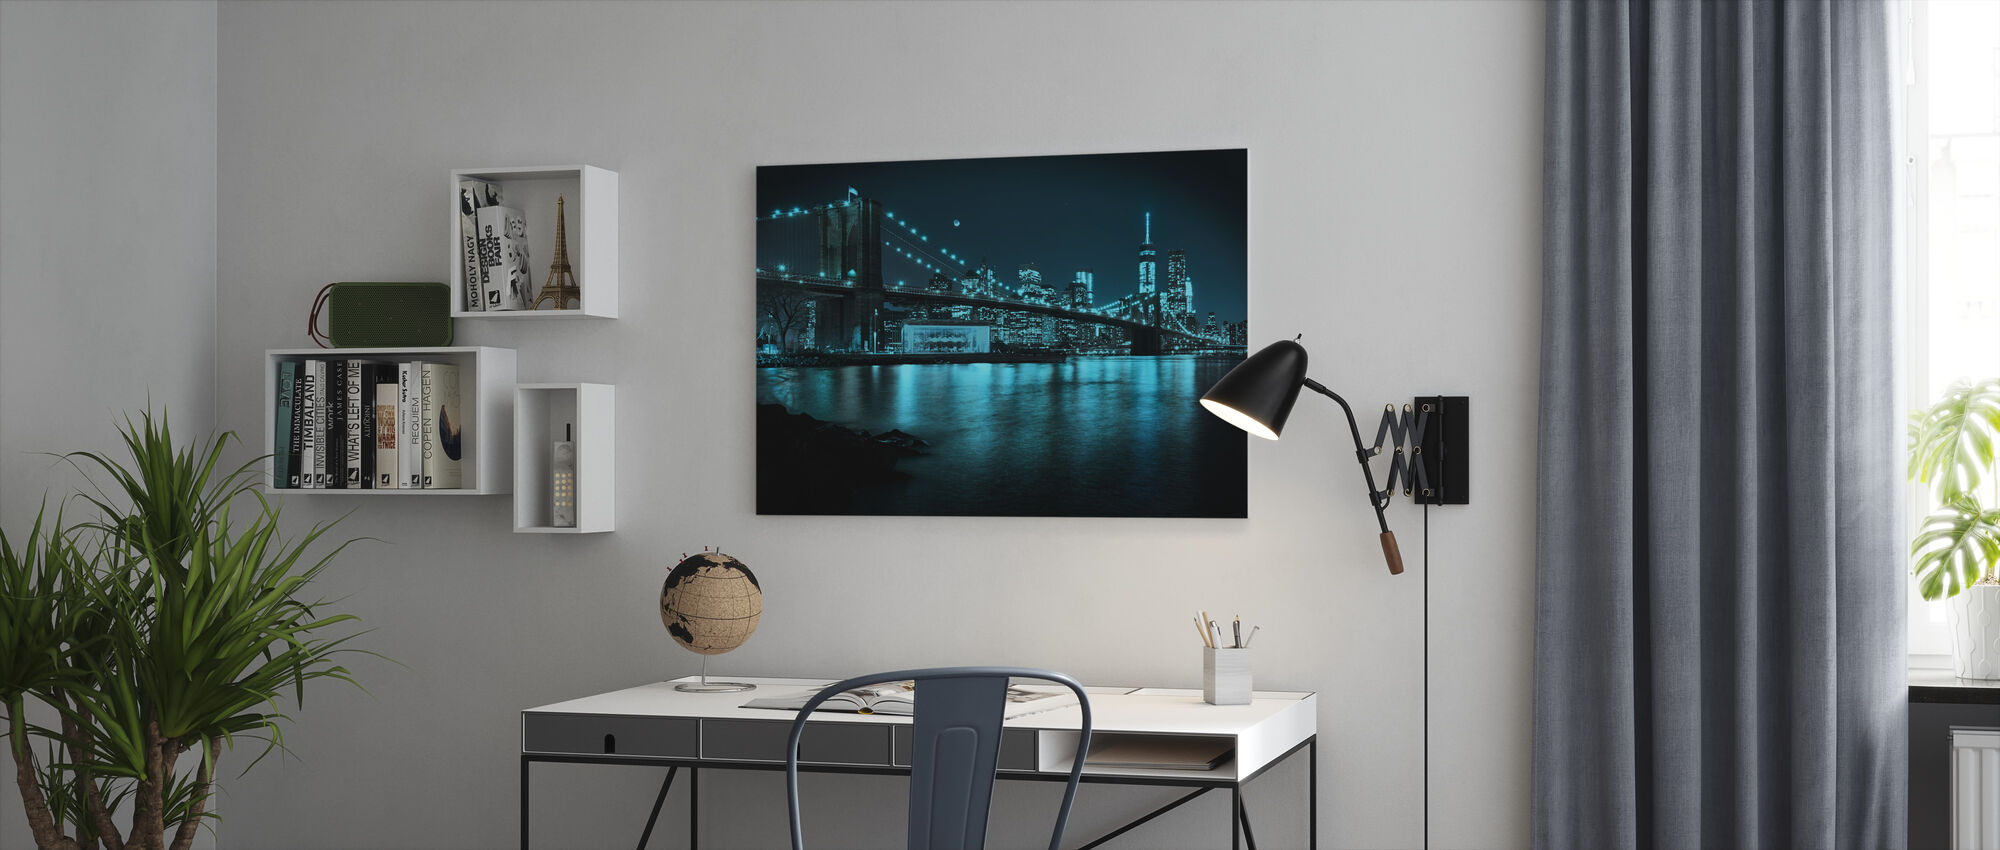 New Freedom Tower and Brooklyn Bridge at night - Canvas print - Office